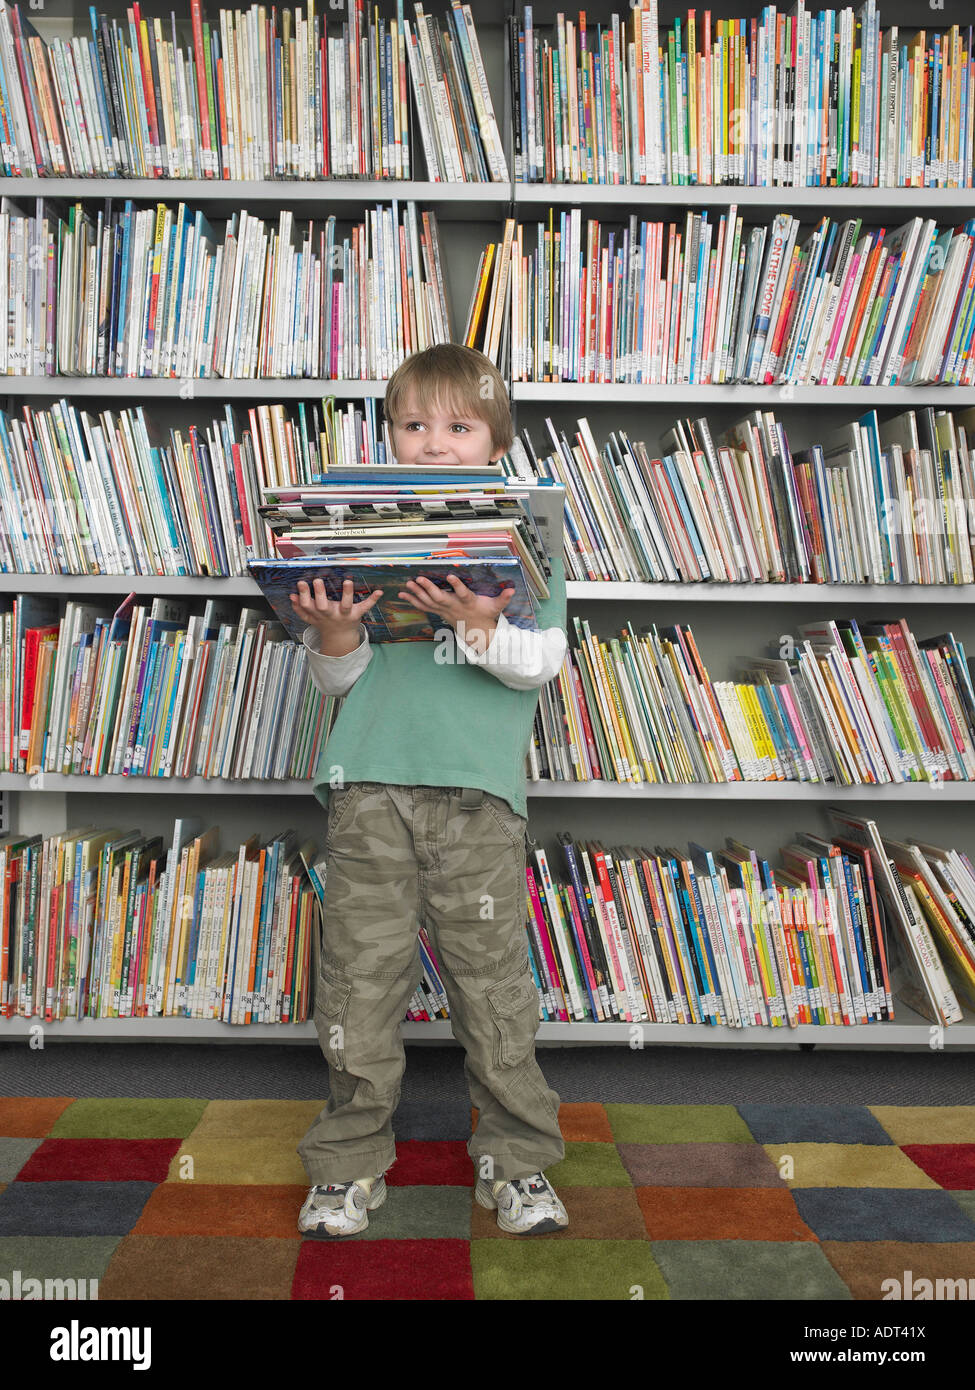 Boy Holding Stack Of Books In Front Library Bookshelf